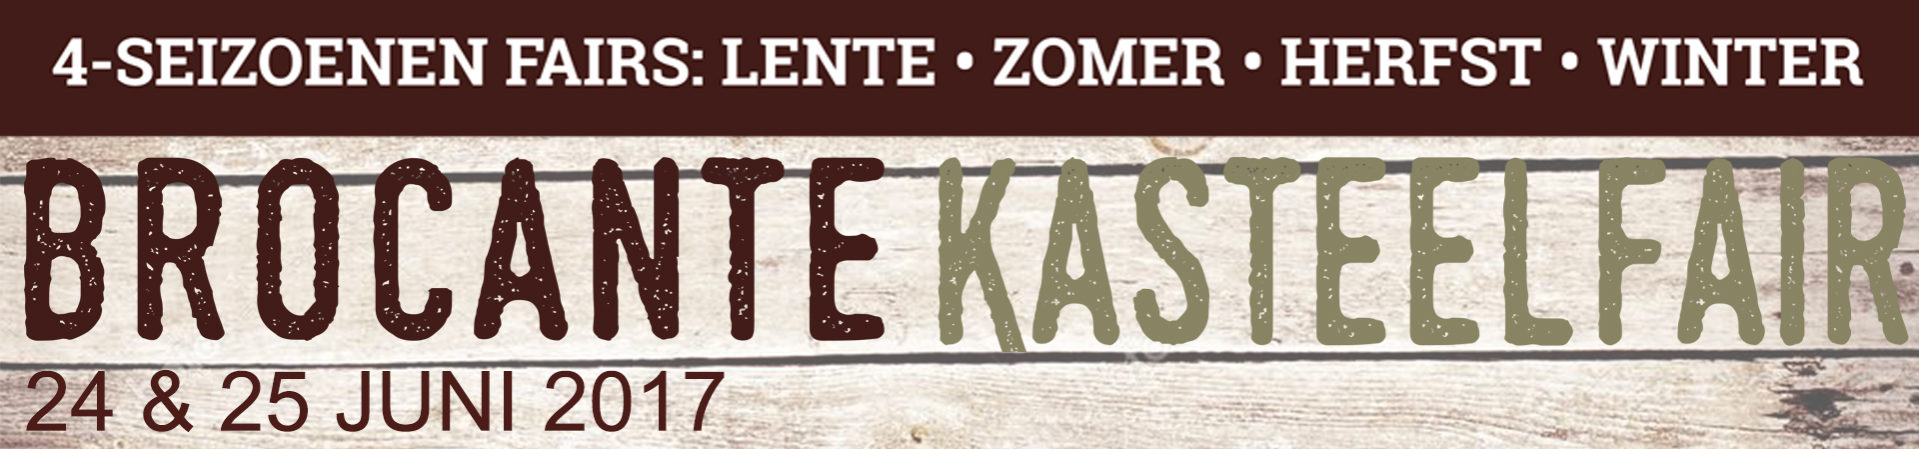 Brocante KasteelFair- header 1920x450